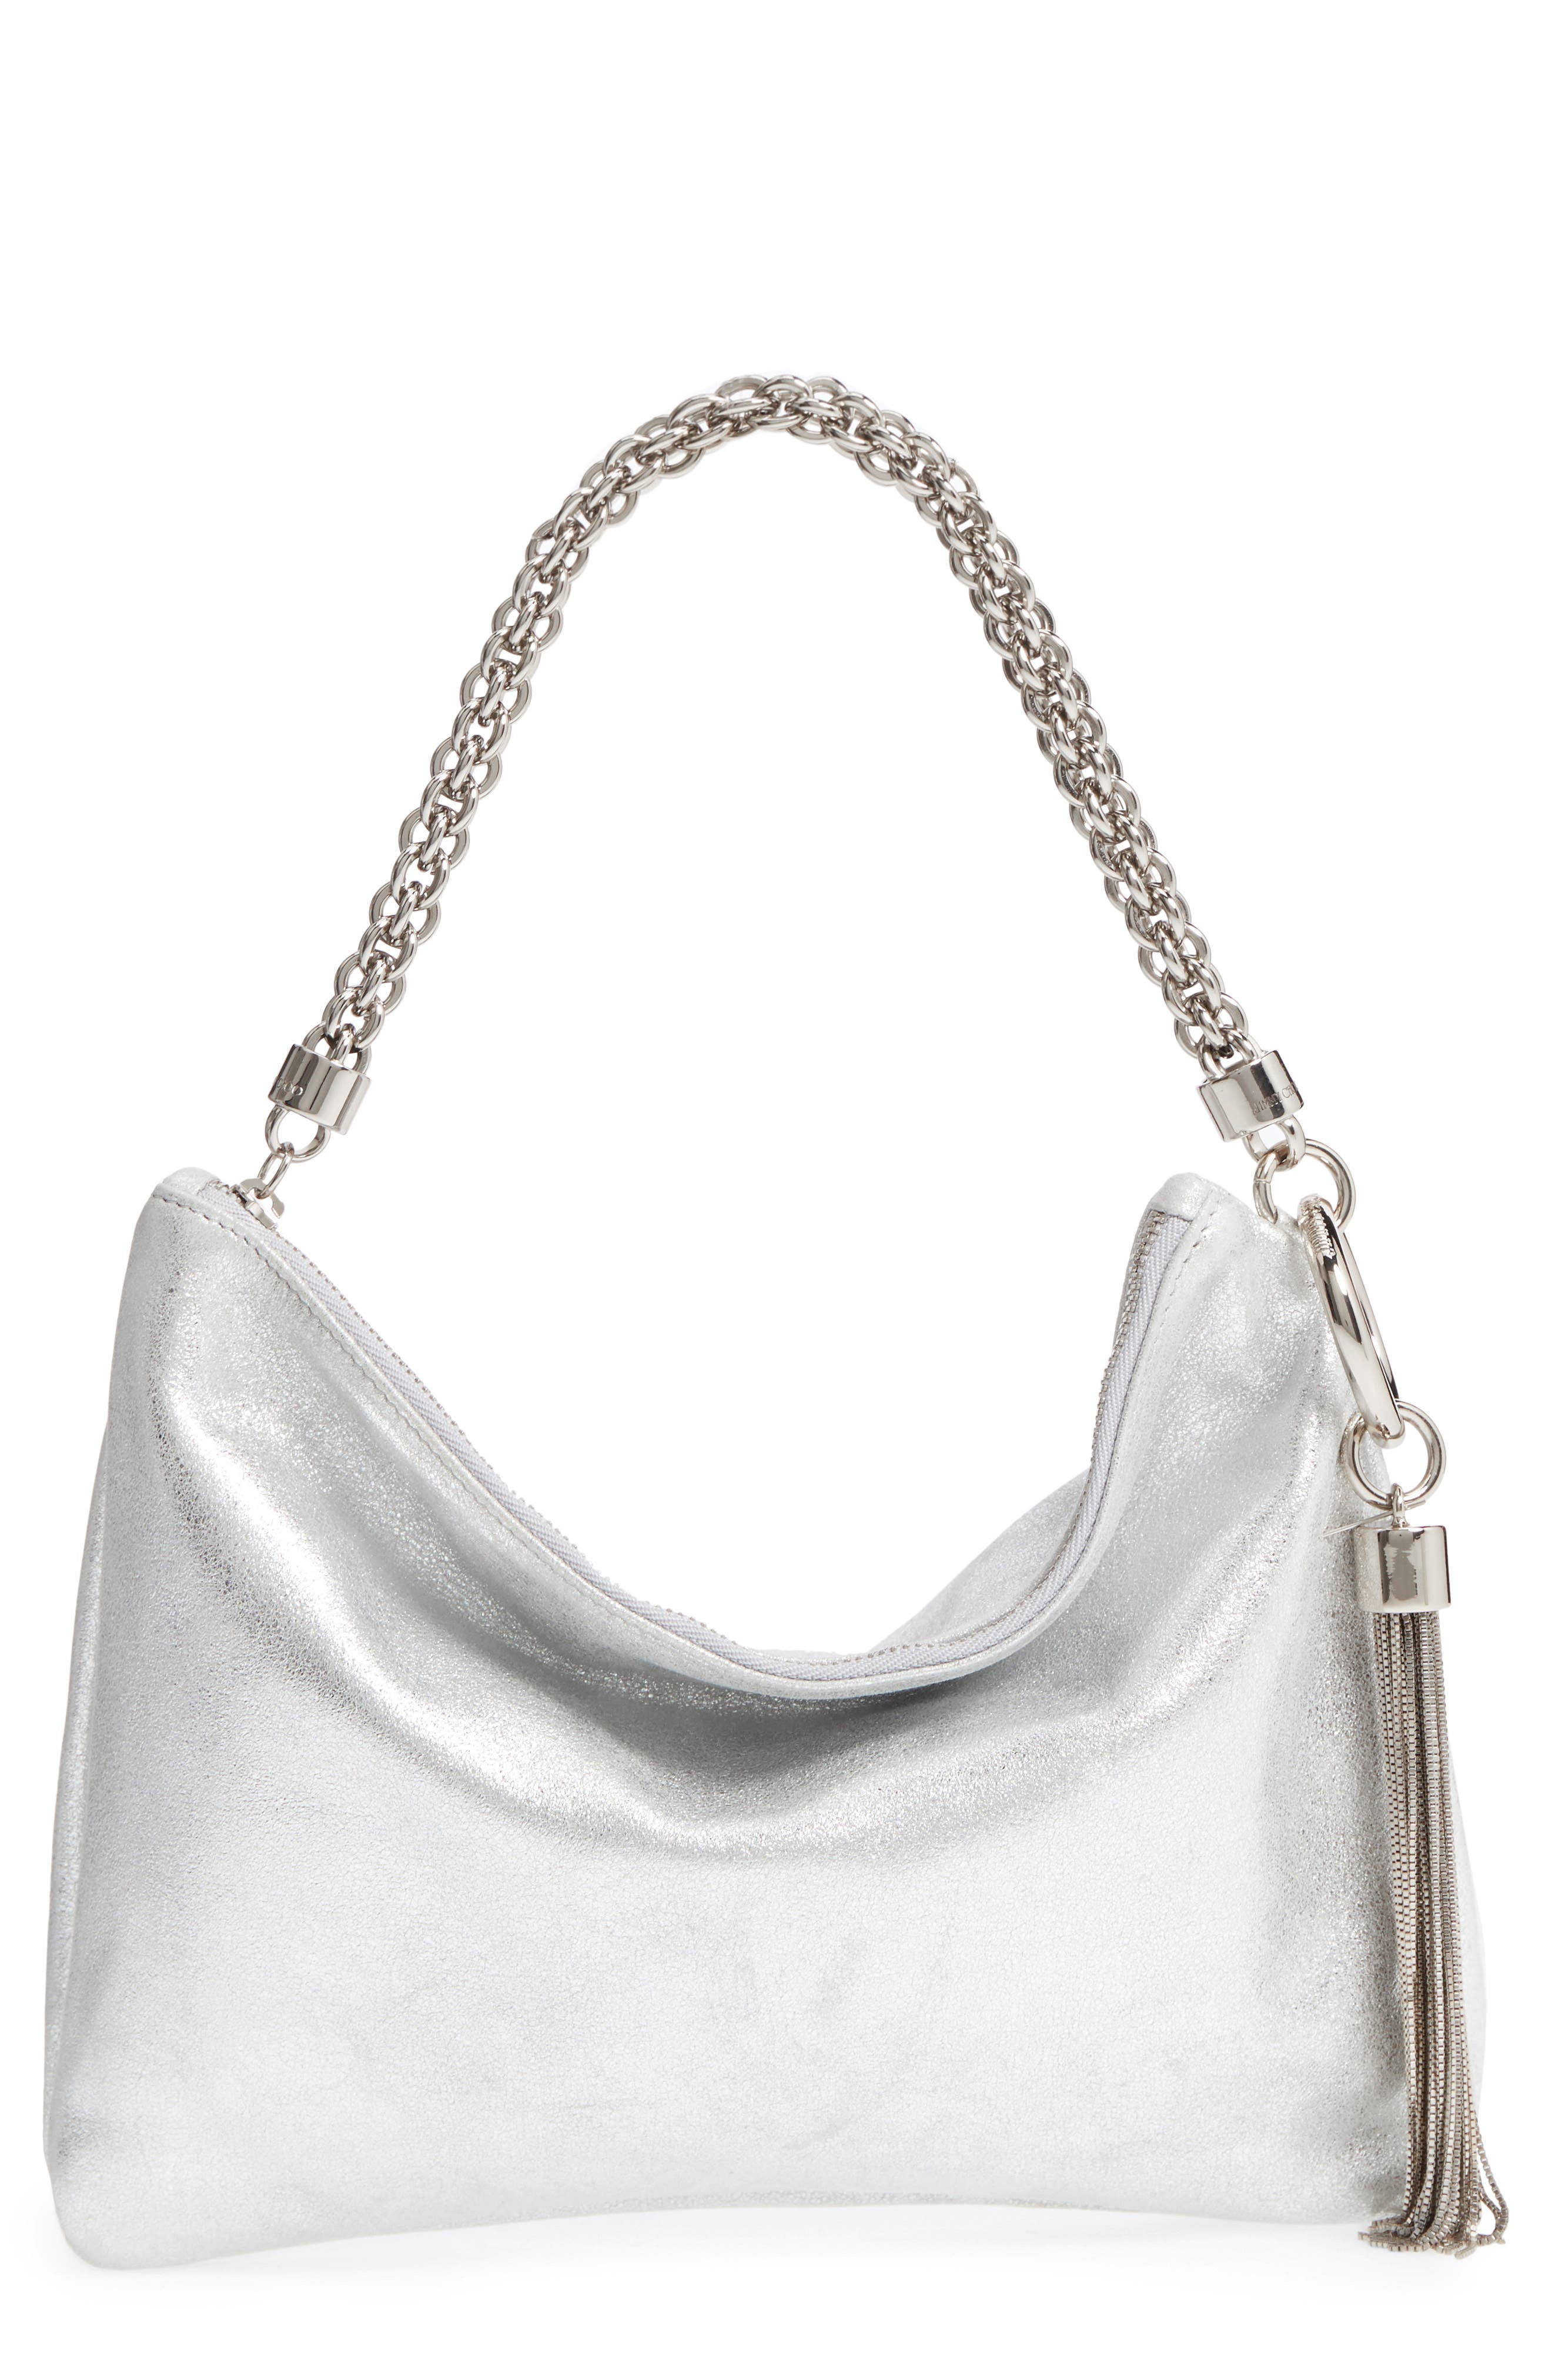 Callie Evening Metallic Leather Clutch,                         Main,                         color, SILVER